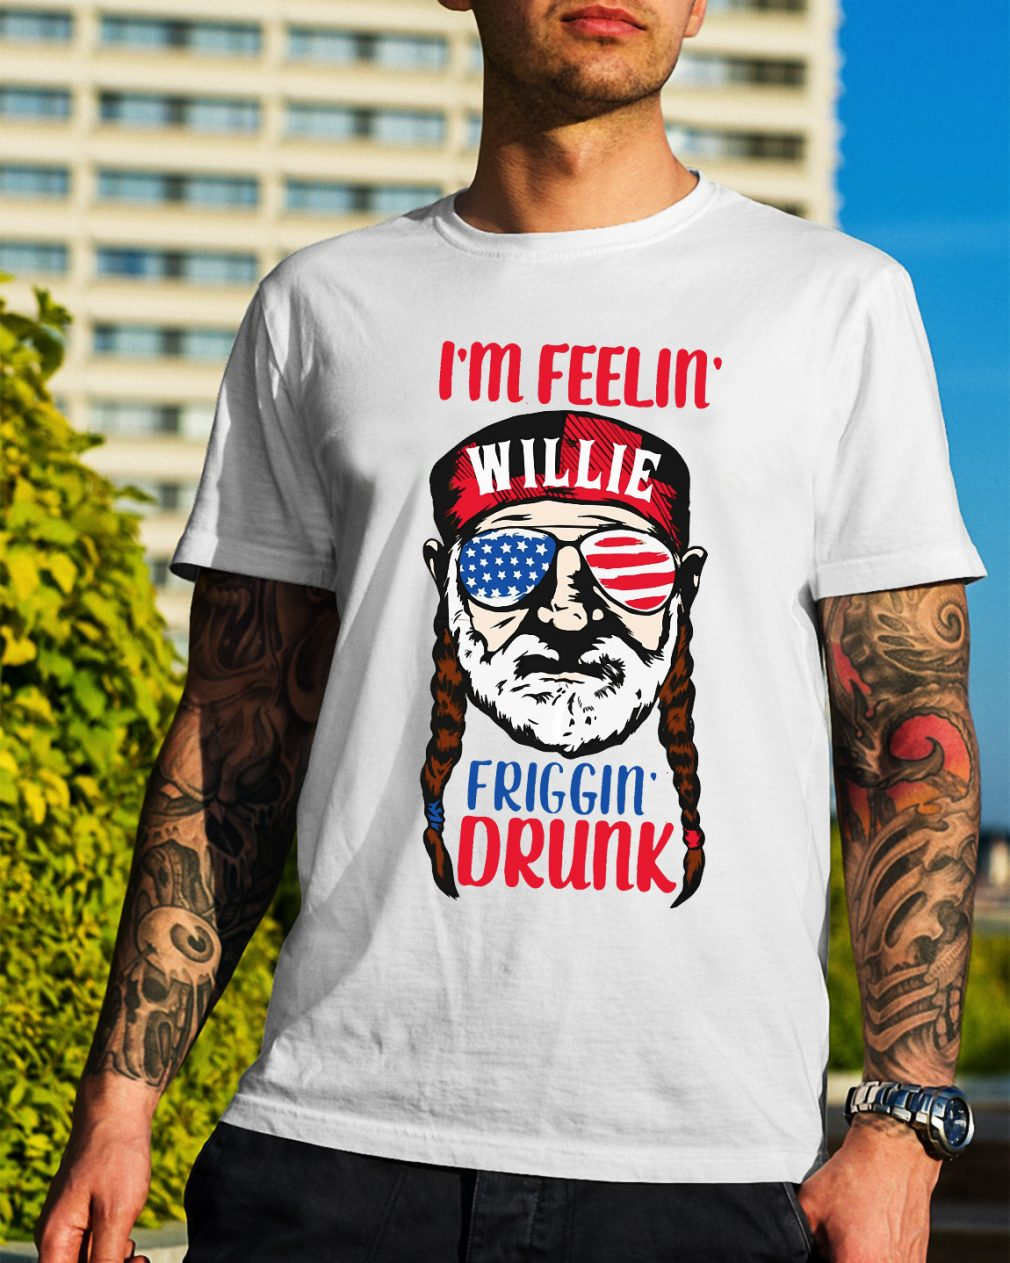 Official I'm feelin' Willie Friggin' drunk shirt